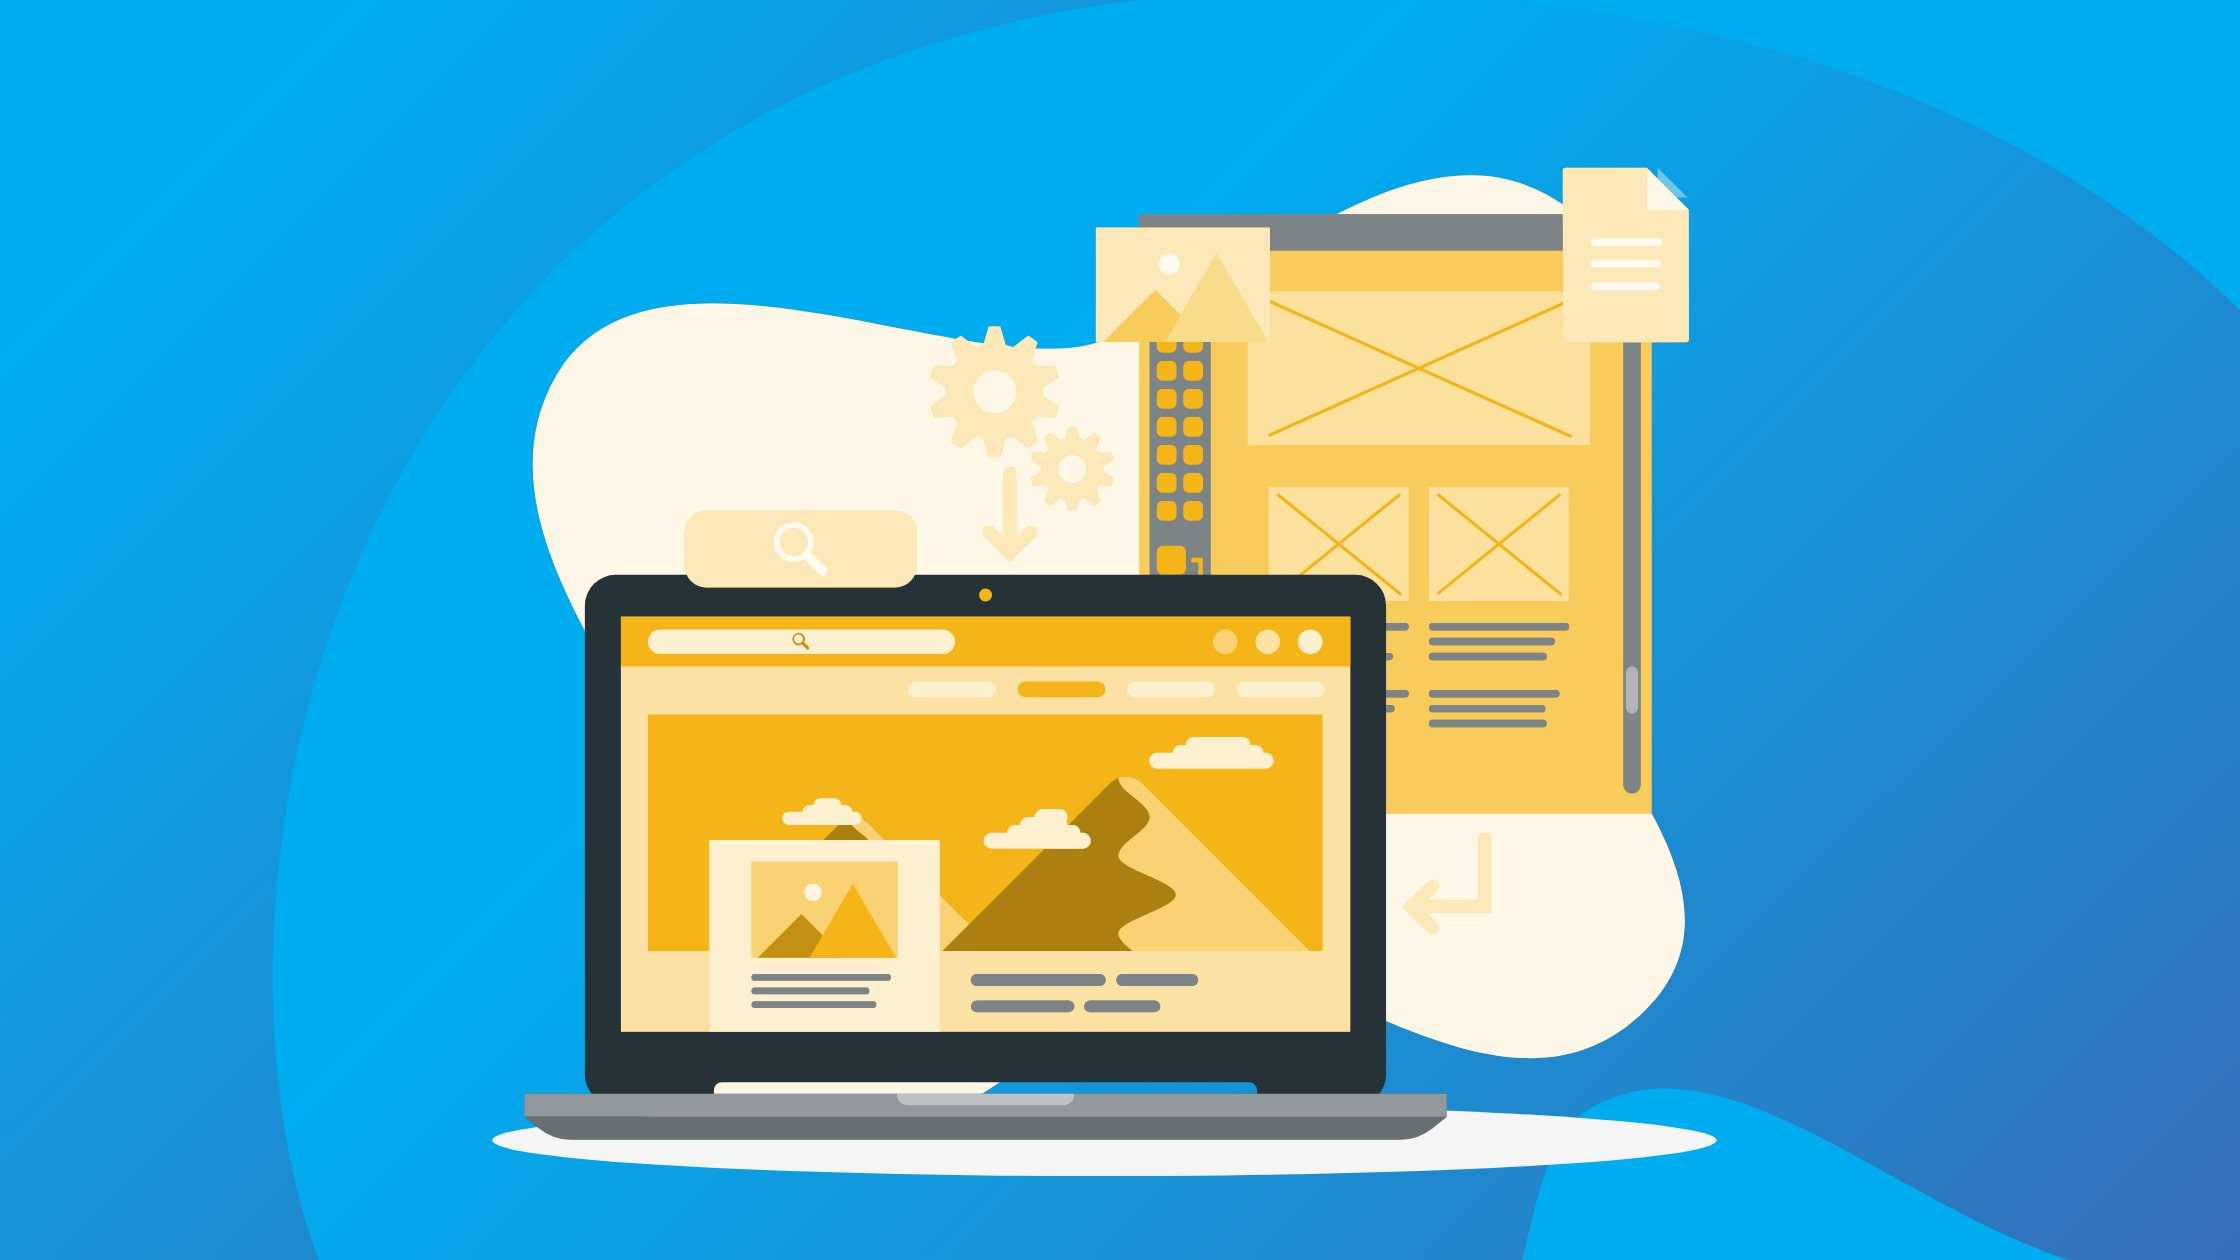 TOP 10 SUPER EASY WAYS TO CHANGE YOUR WEB DESIGN TO UP WEBSITE TRAFFIC